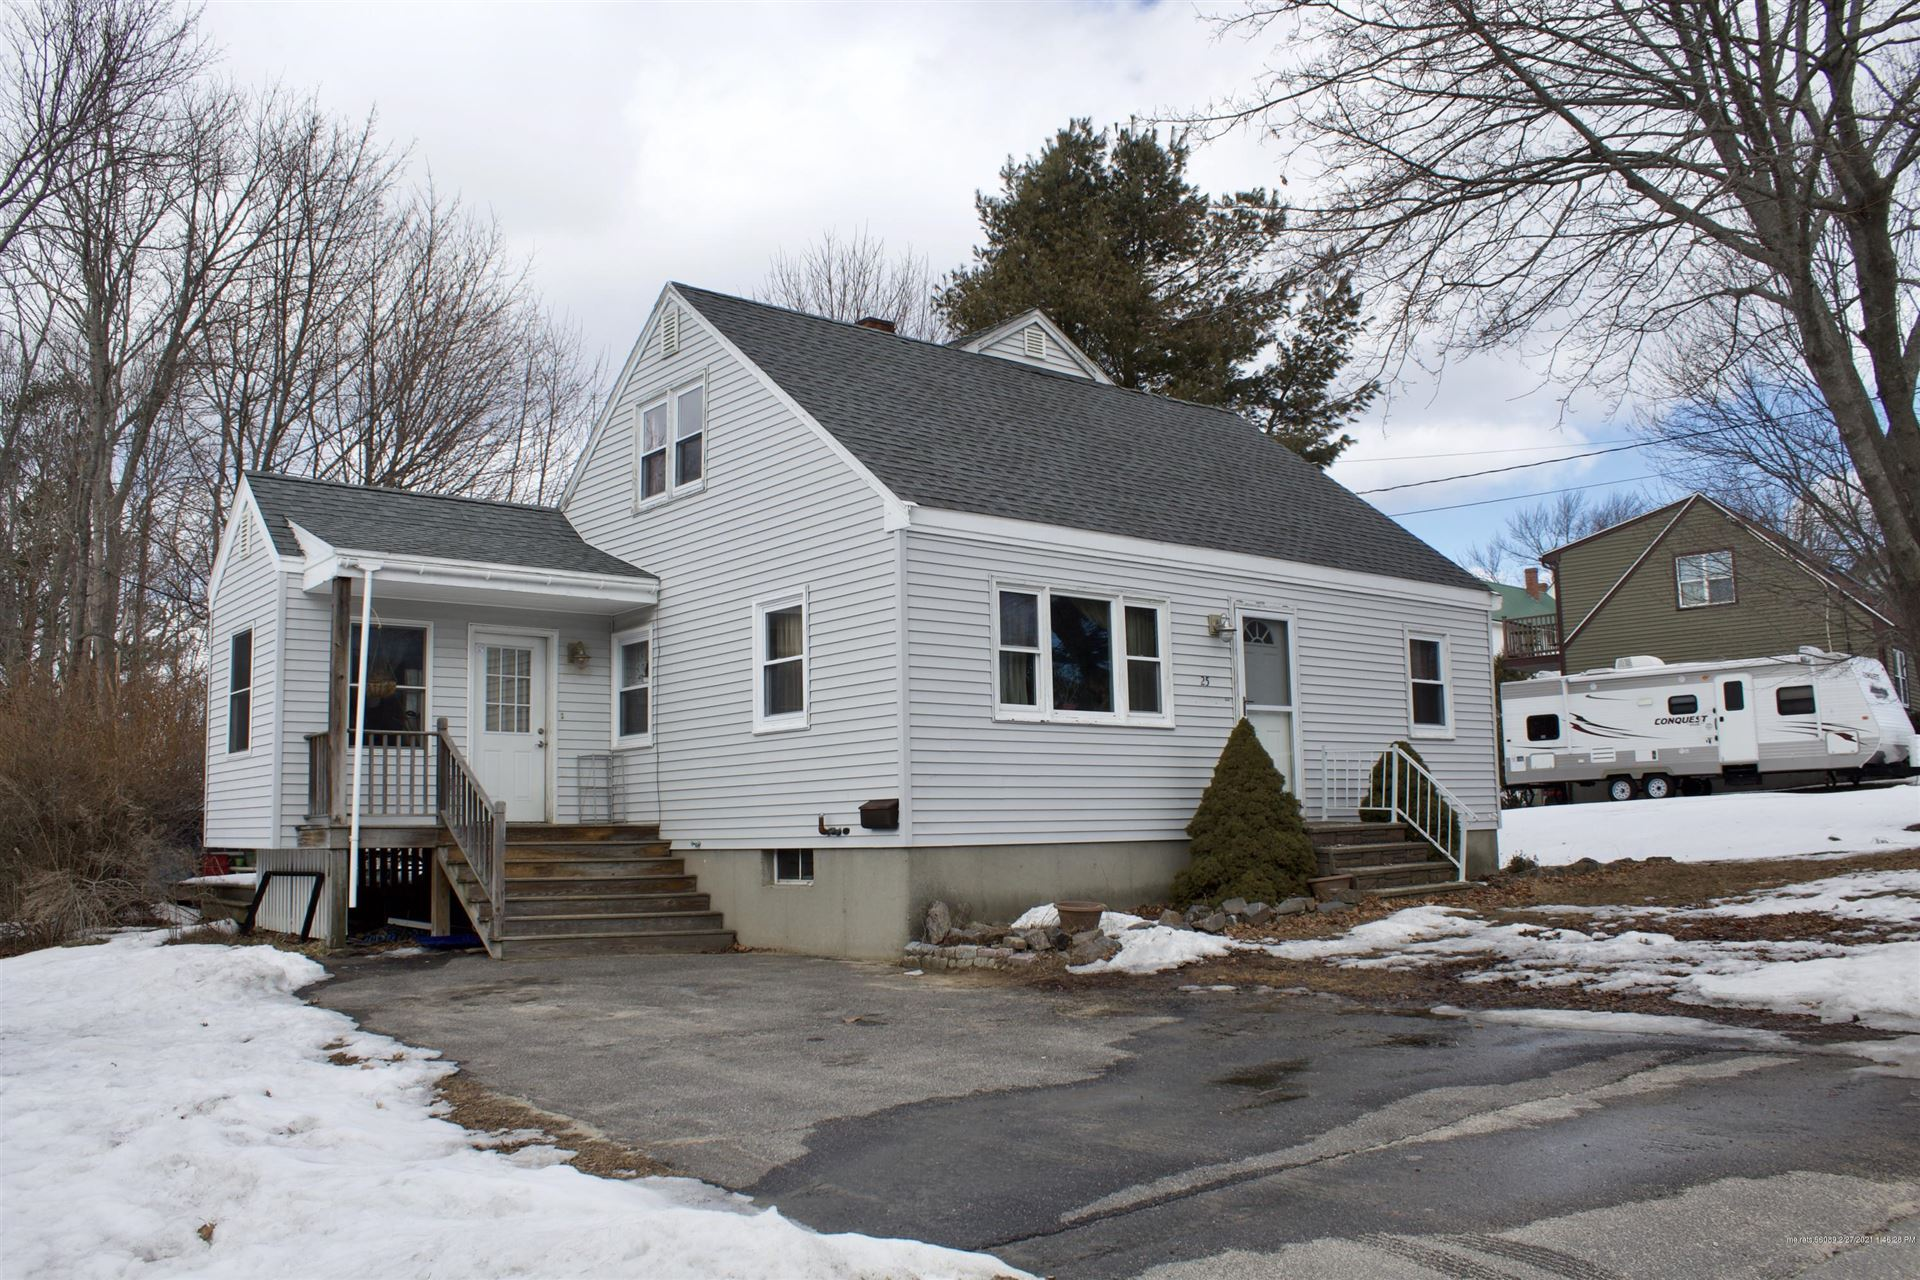 Photo of 25 Strout Street, South Portland, ME 04106 (MLS # 1483009)